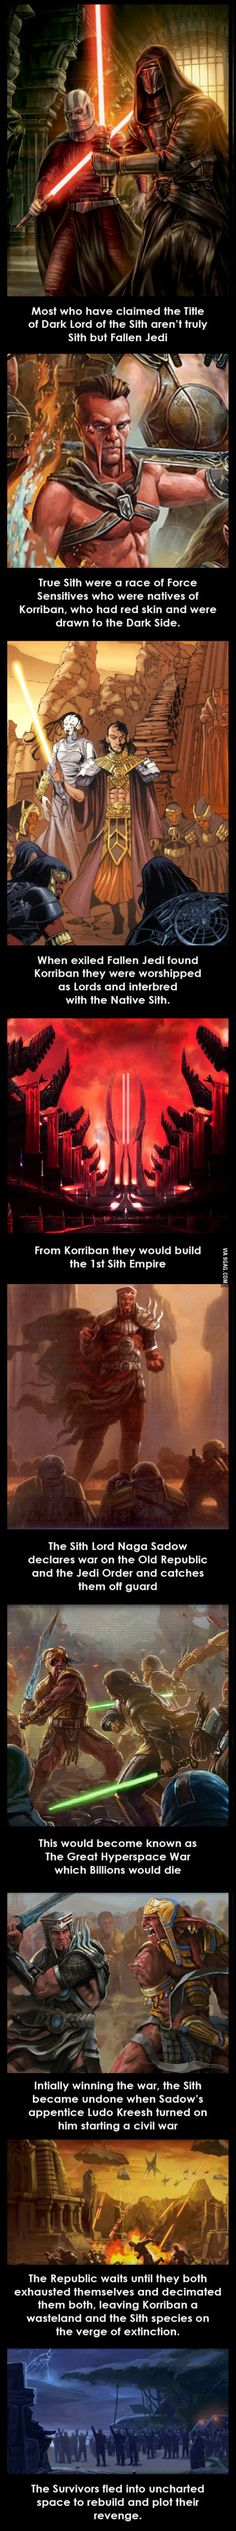 The Origins of the Sith (Star Wars)